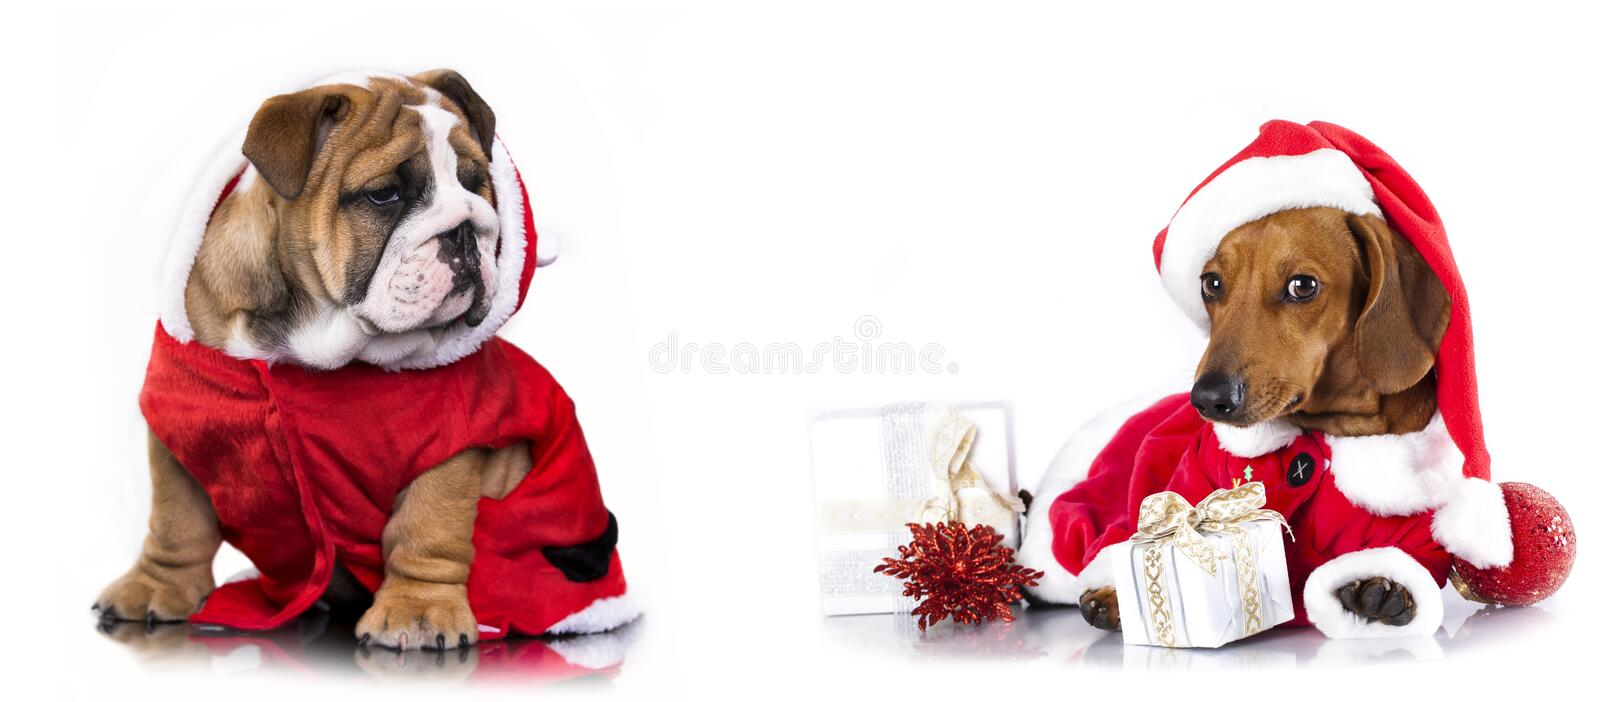 Group Christmas dog in on white background royalty free stock image